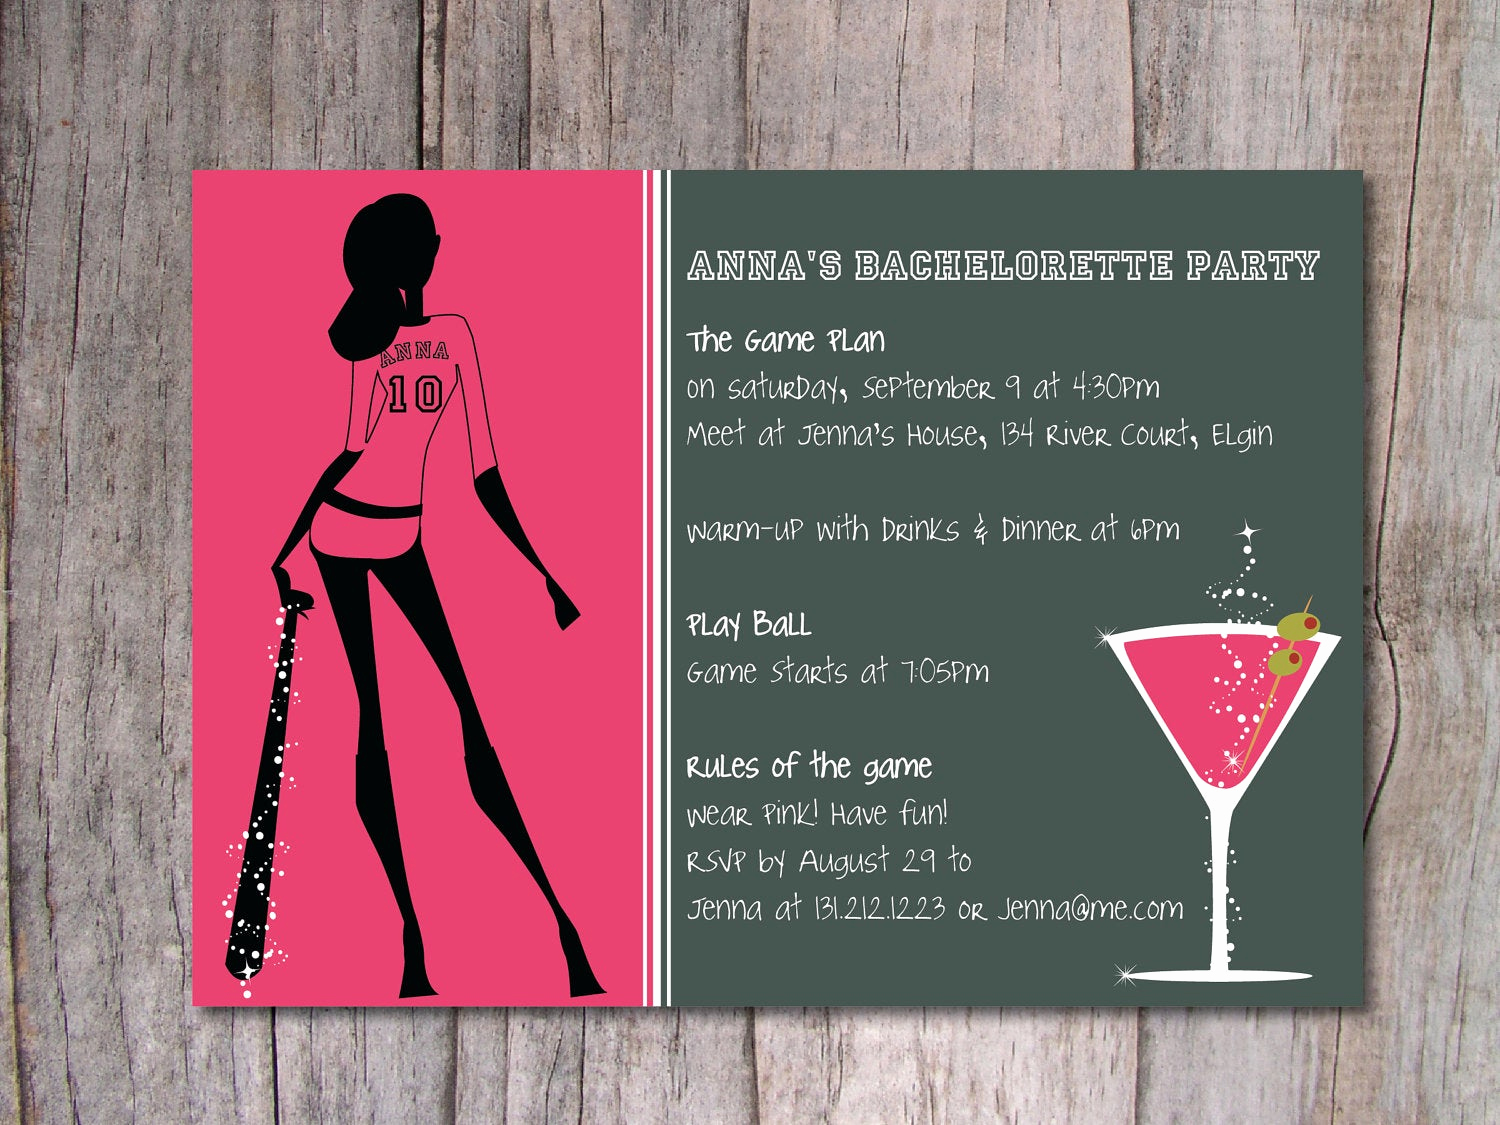 Bachelorette Party Invitation Wording Lovely Baseball Bachelorette Party Invitation by Pinch Spice On Etsy